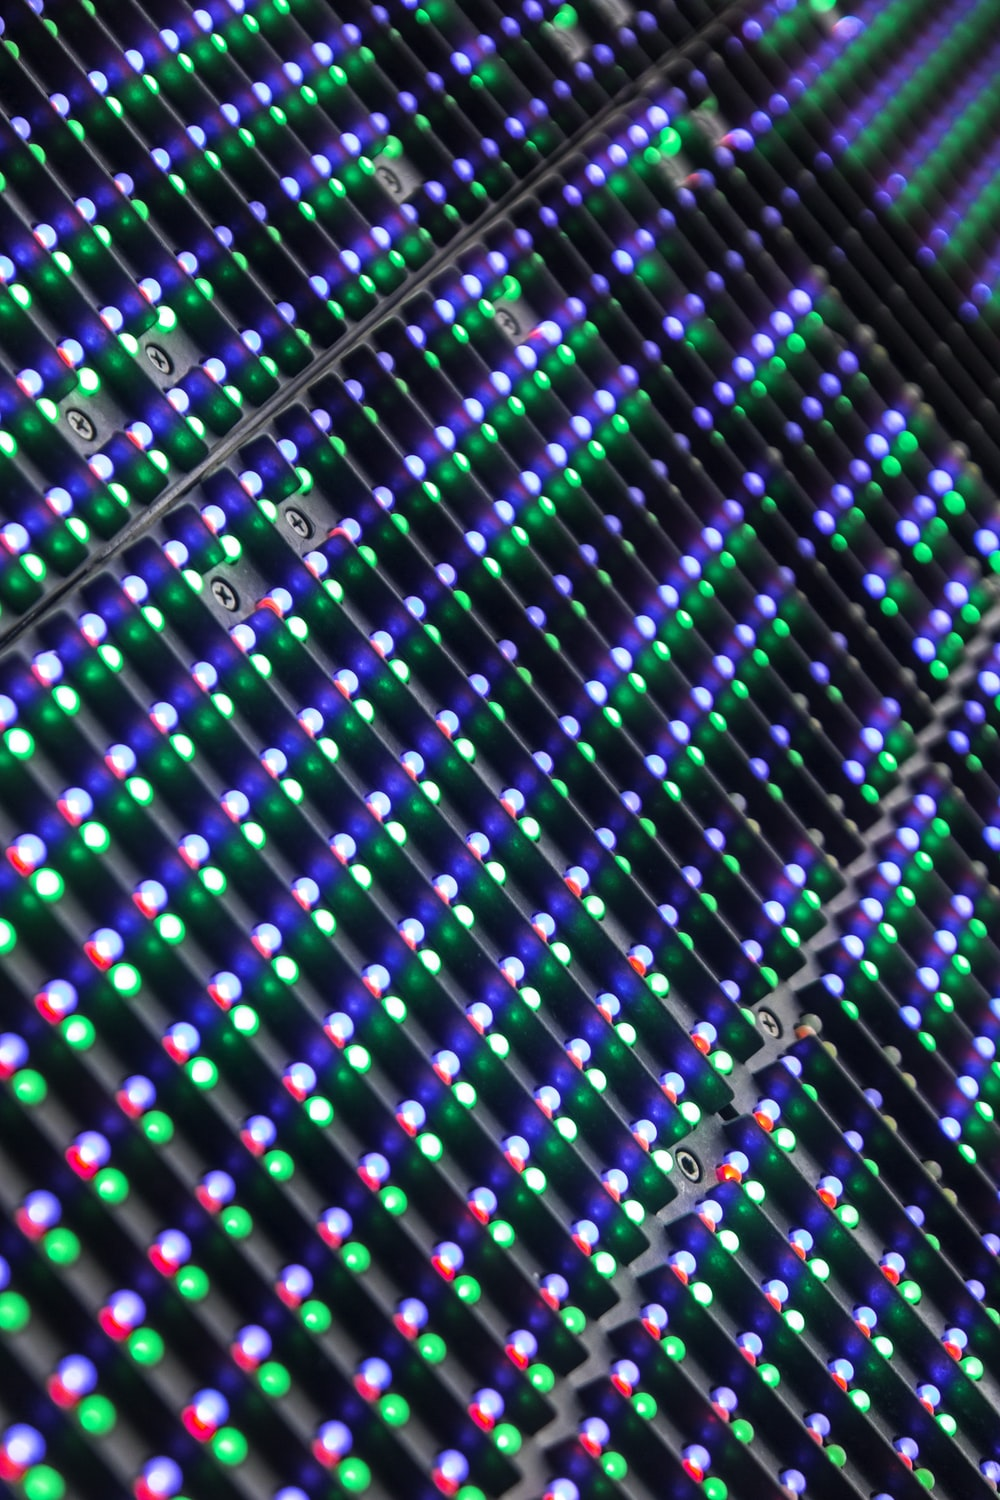 green, purple, and white textile